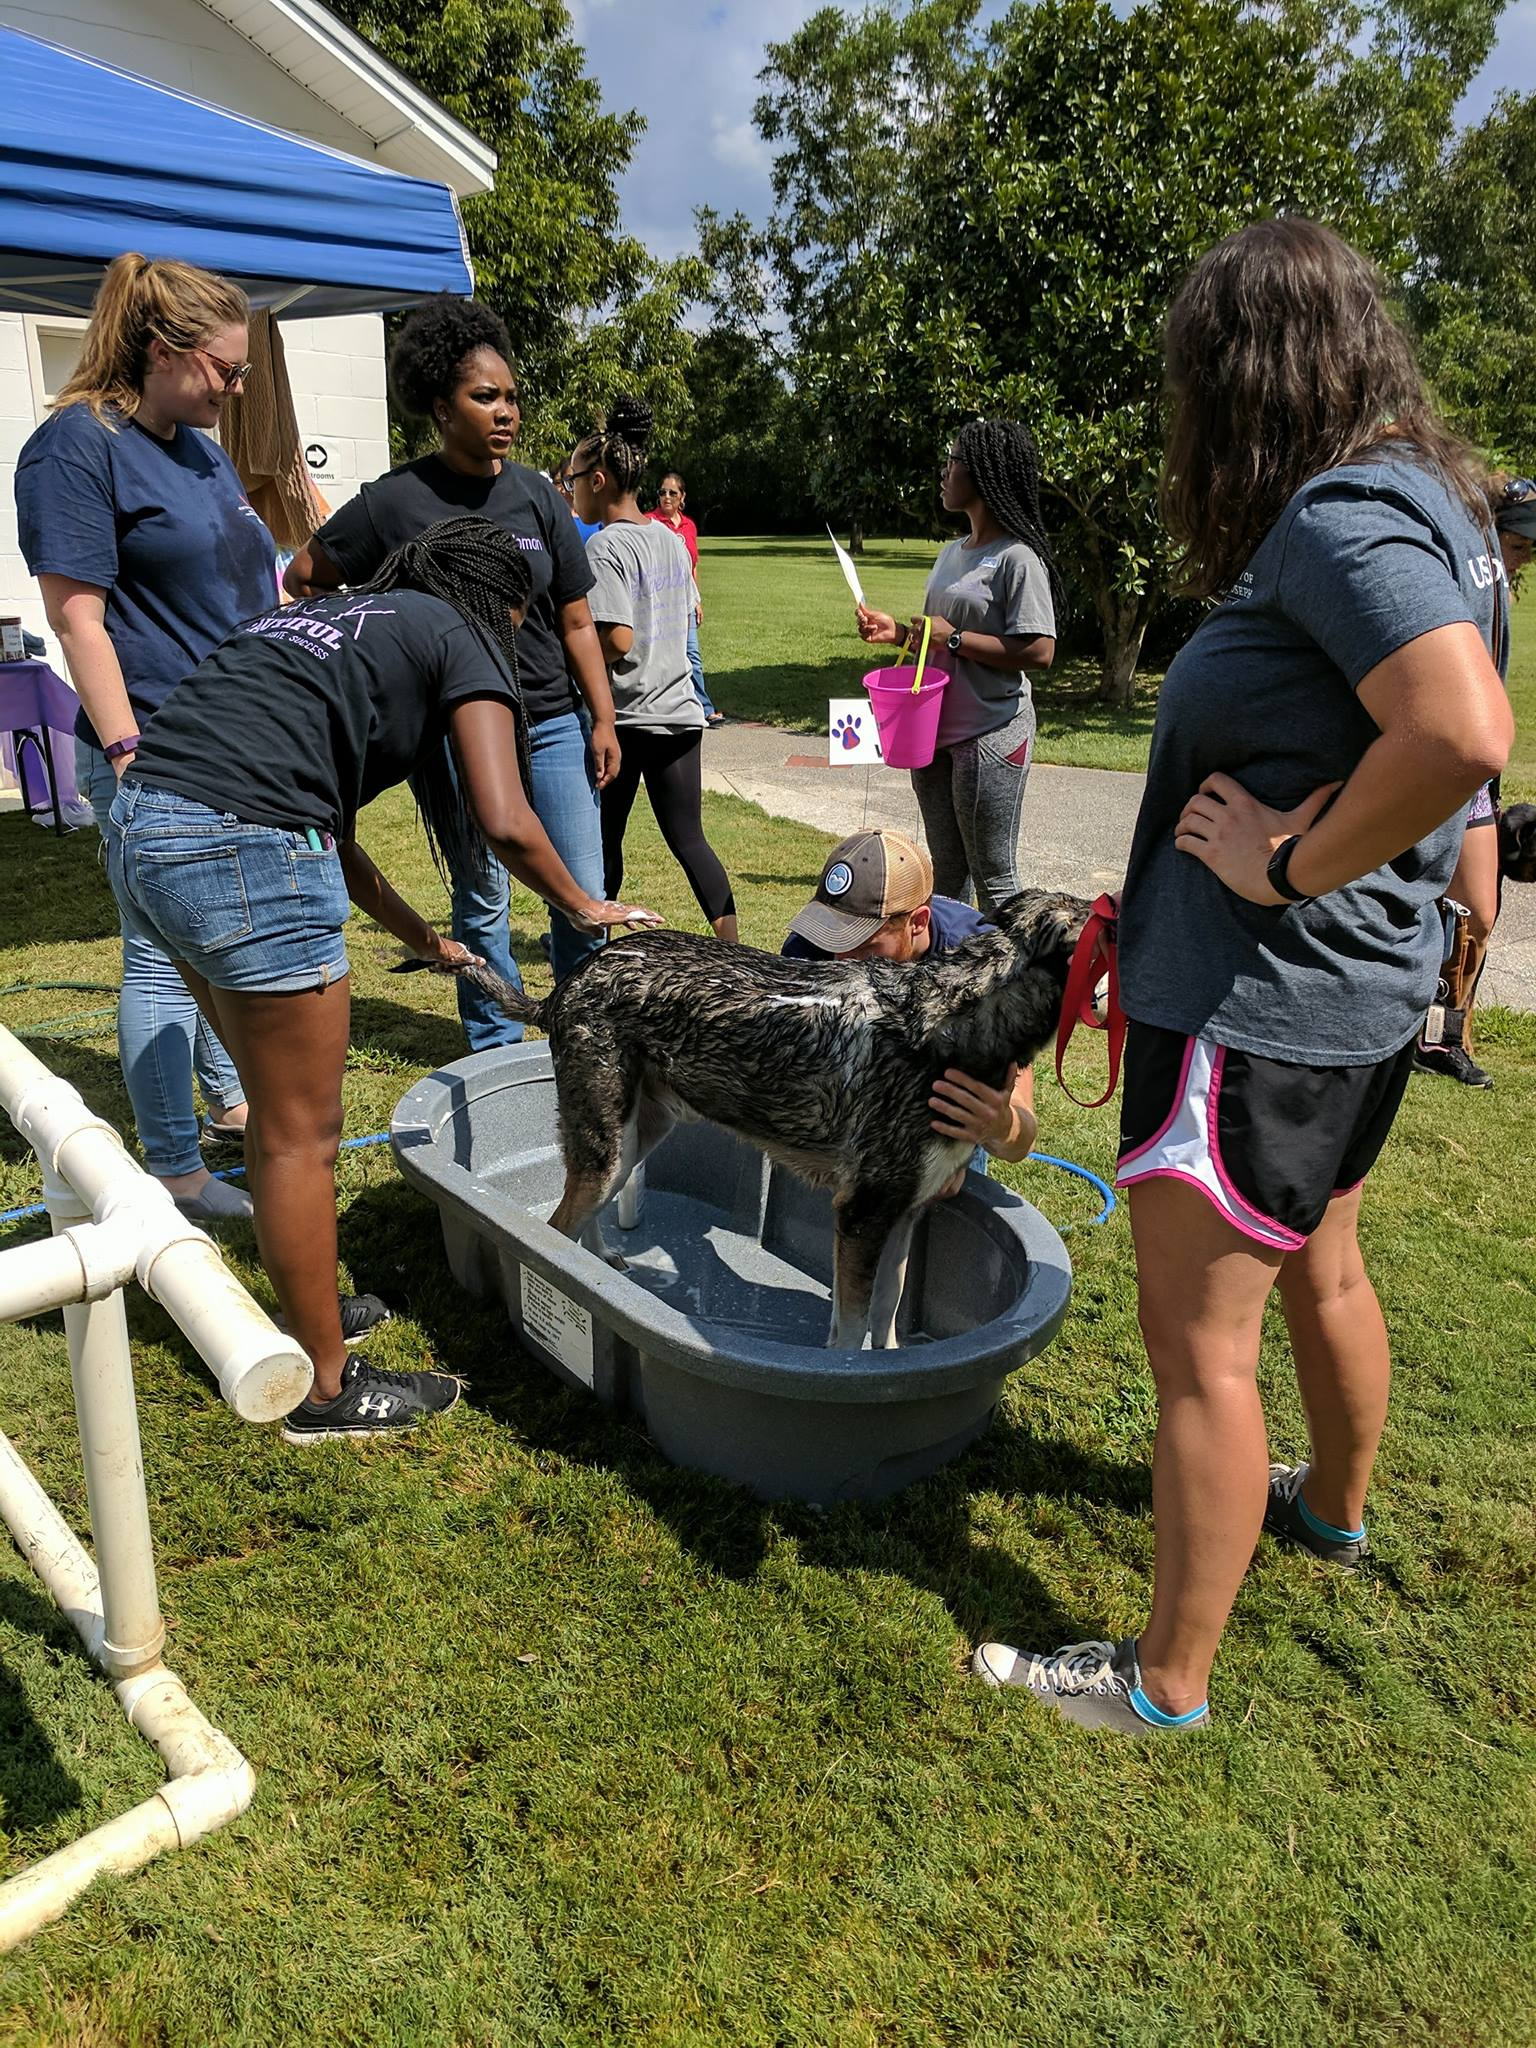 Volunteers washing pups